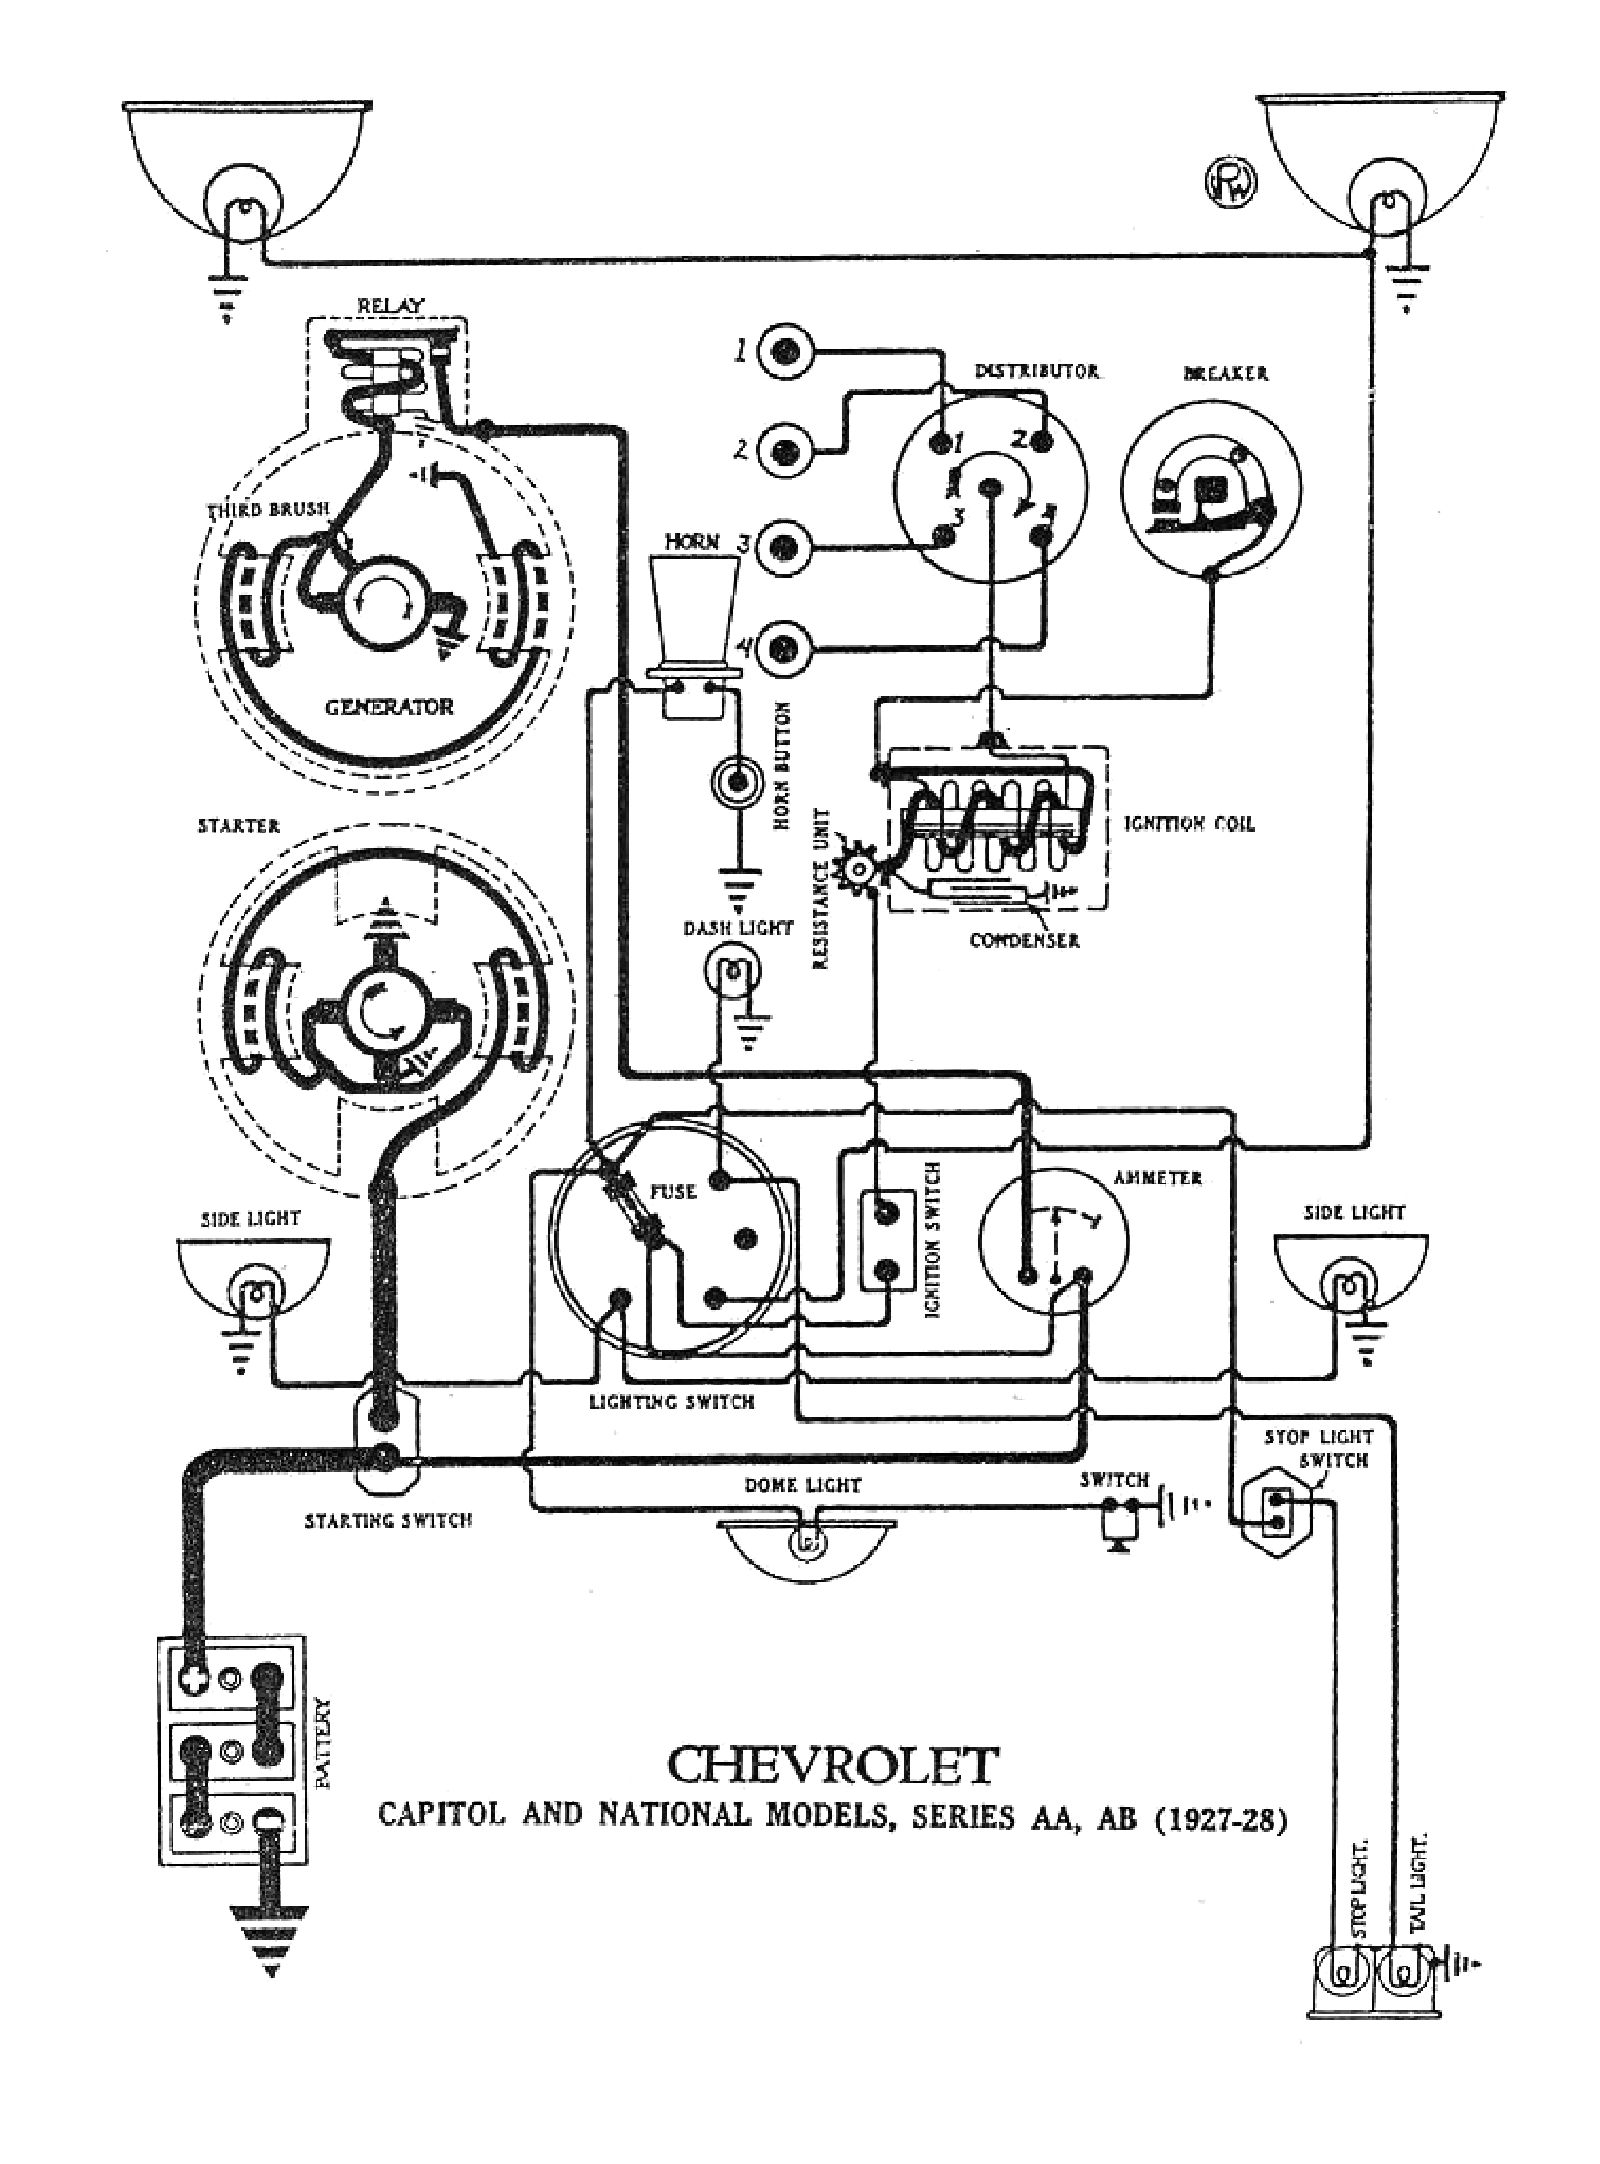 1938 Buick Wiring Diagram Data 1933 Chevrolet Diagrams Schematic 2000 Regal